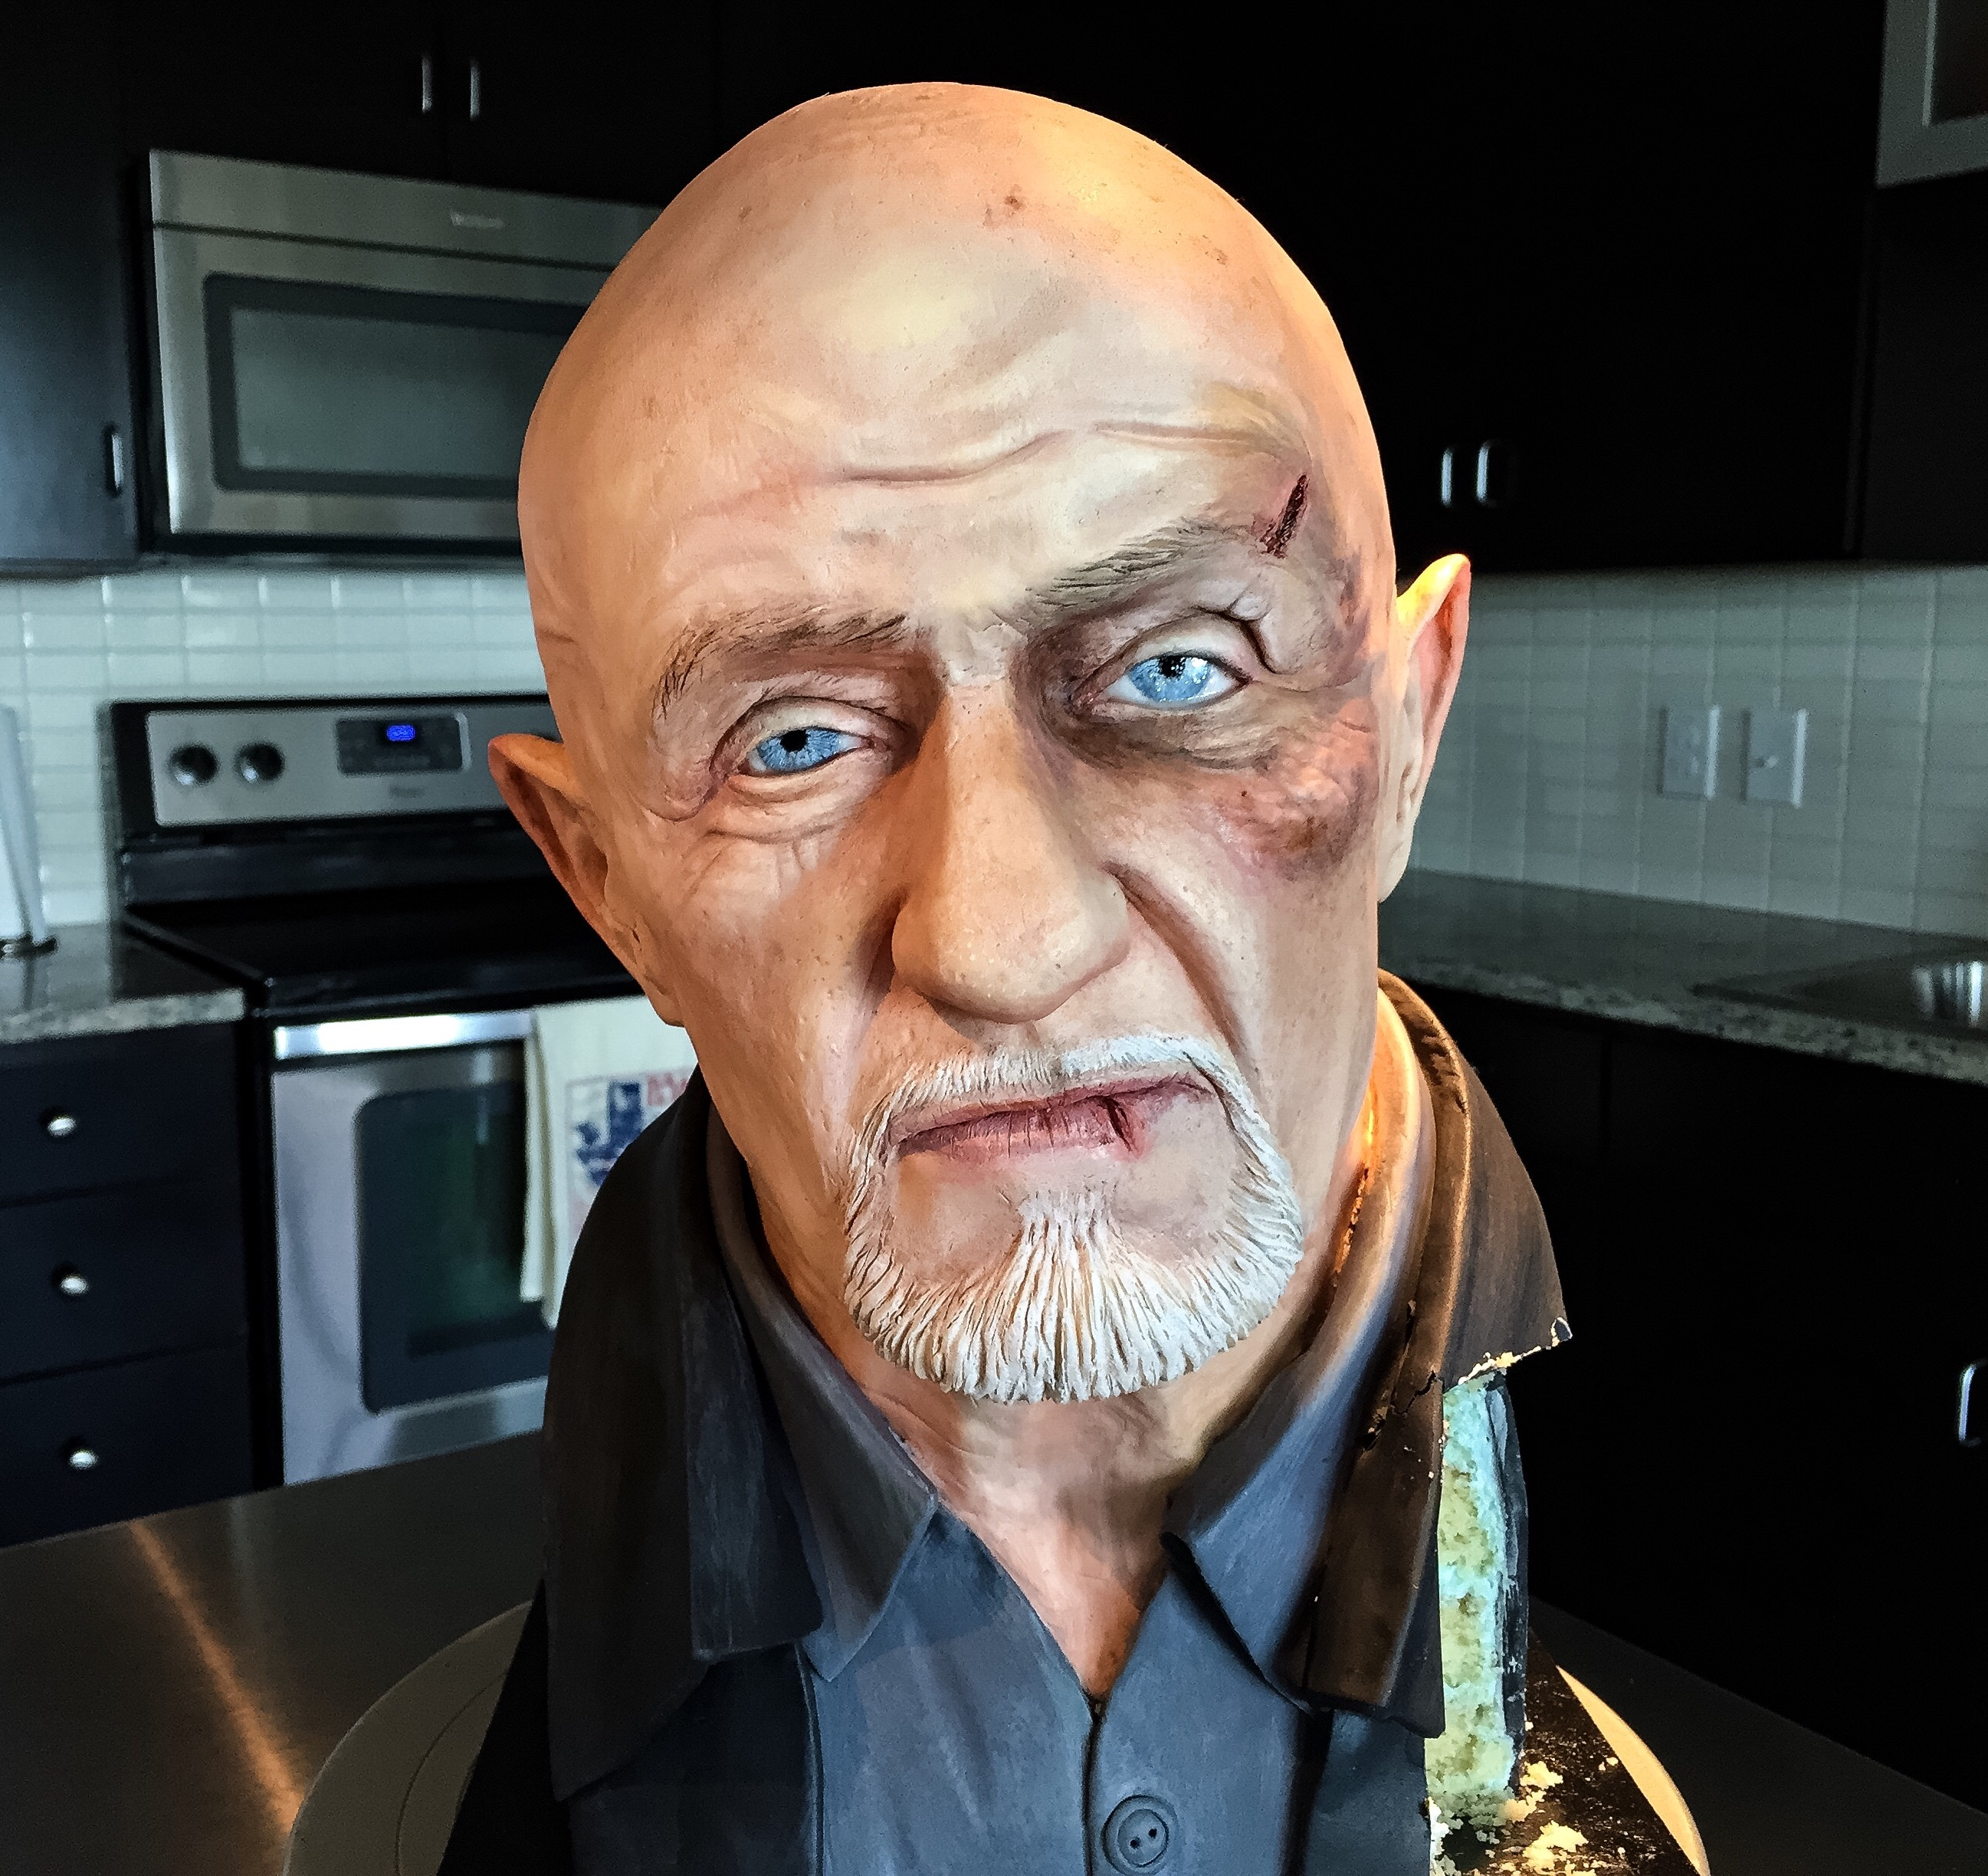 Mike Ehrmantrout of Better Call Saul/Breaking Bad